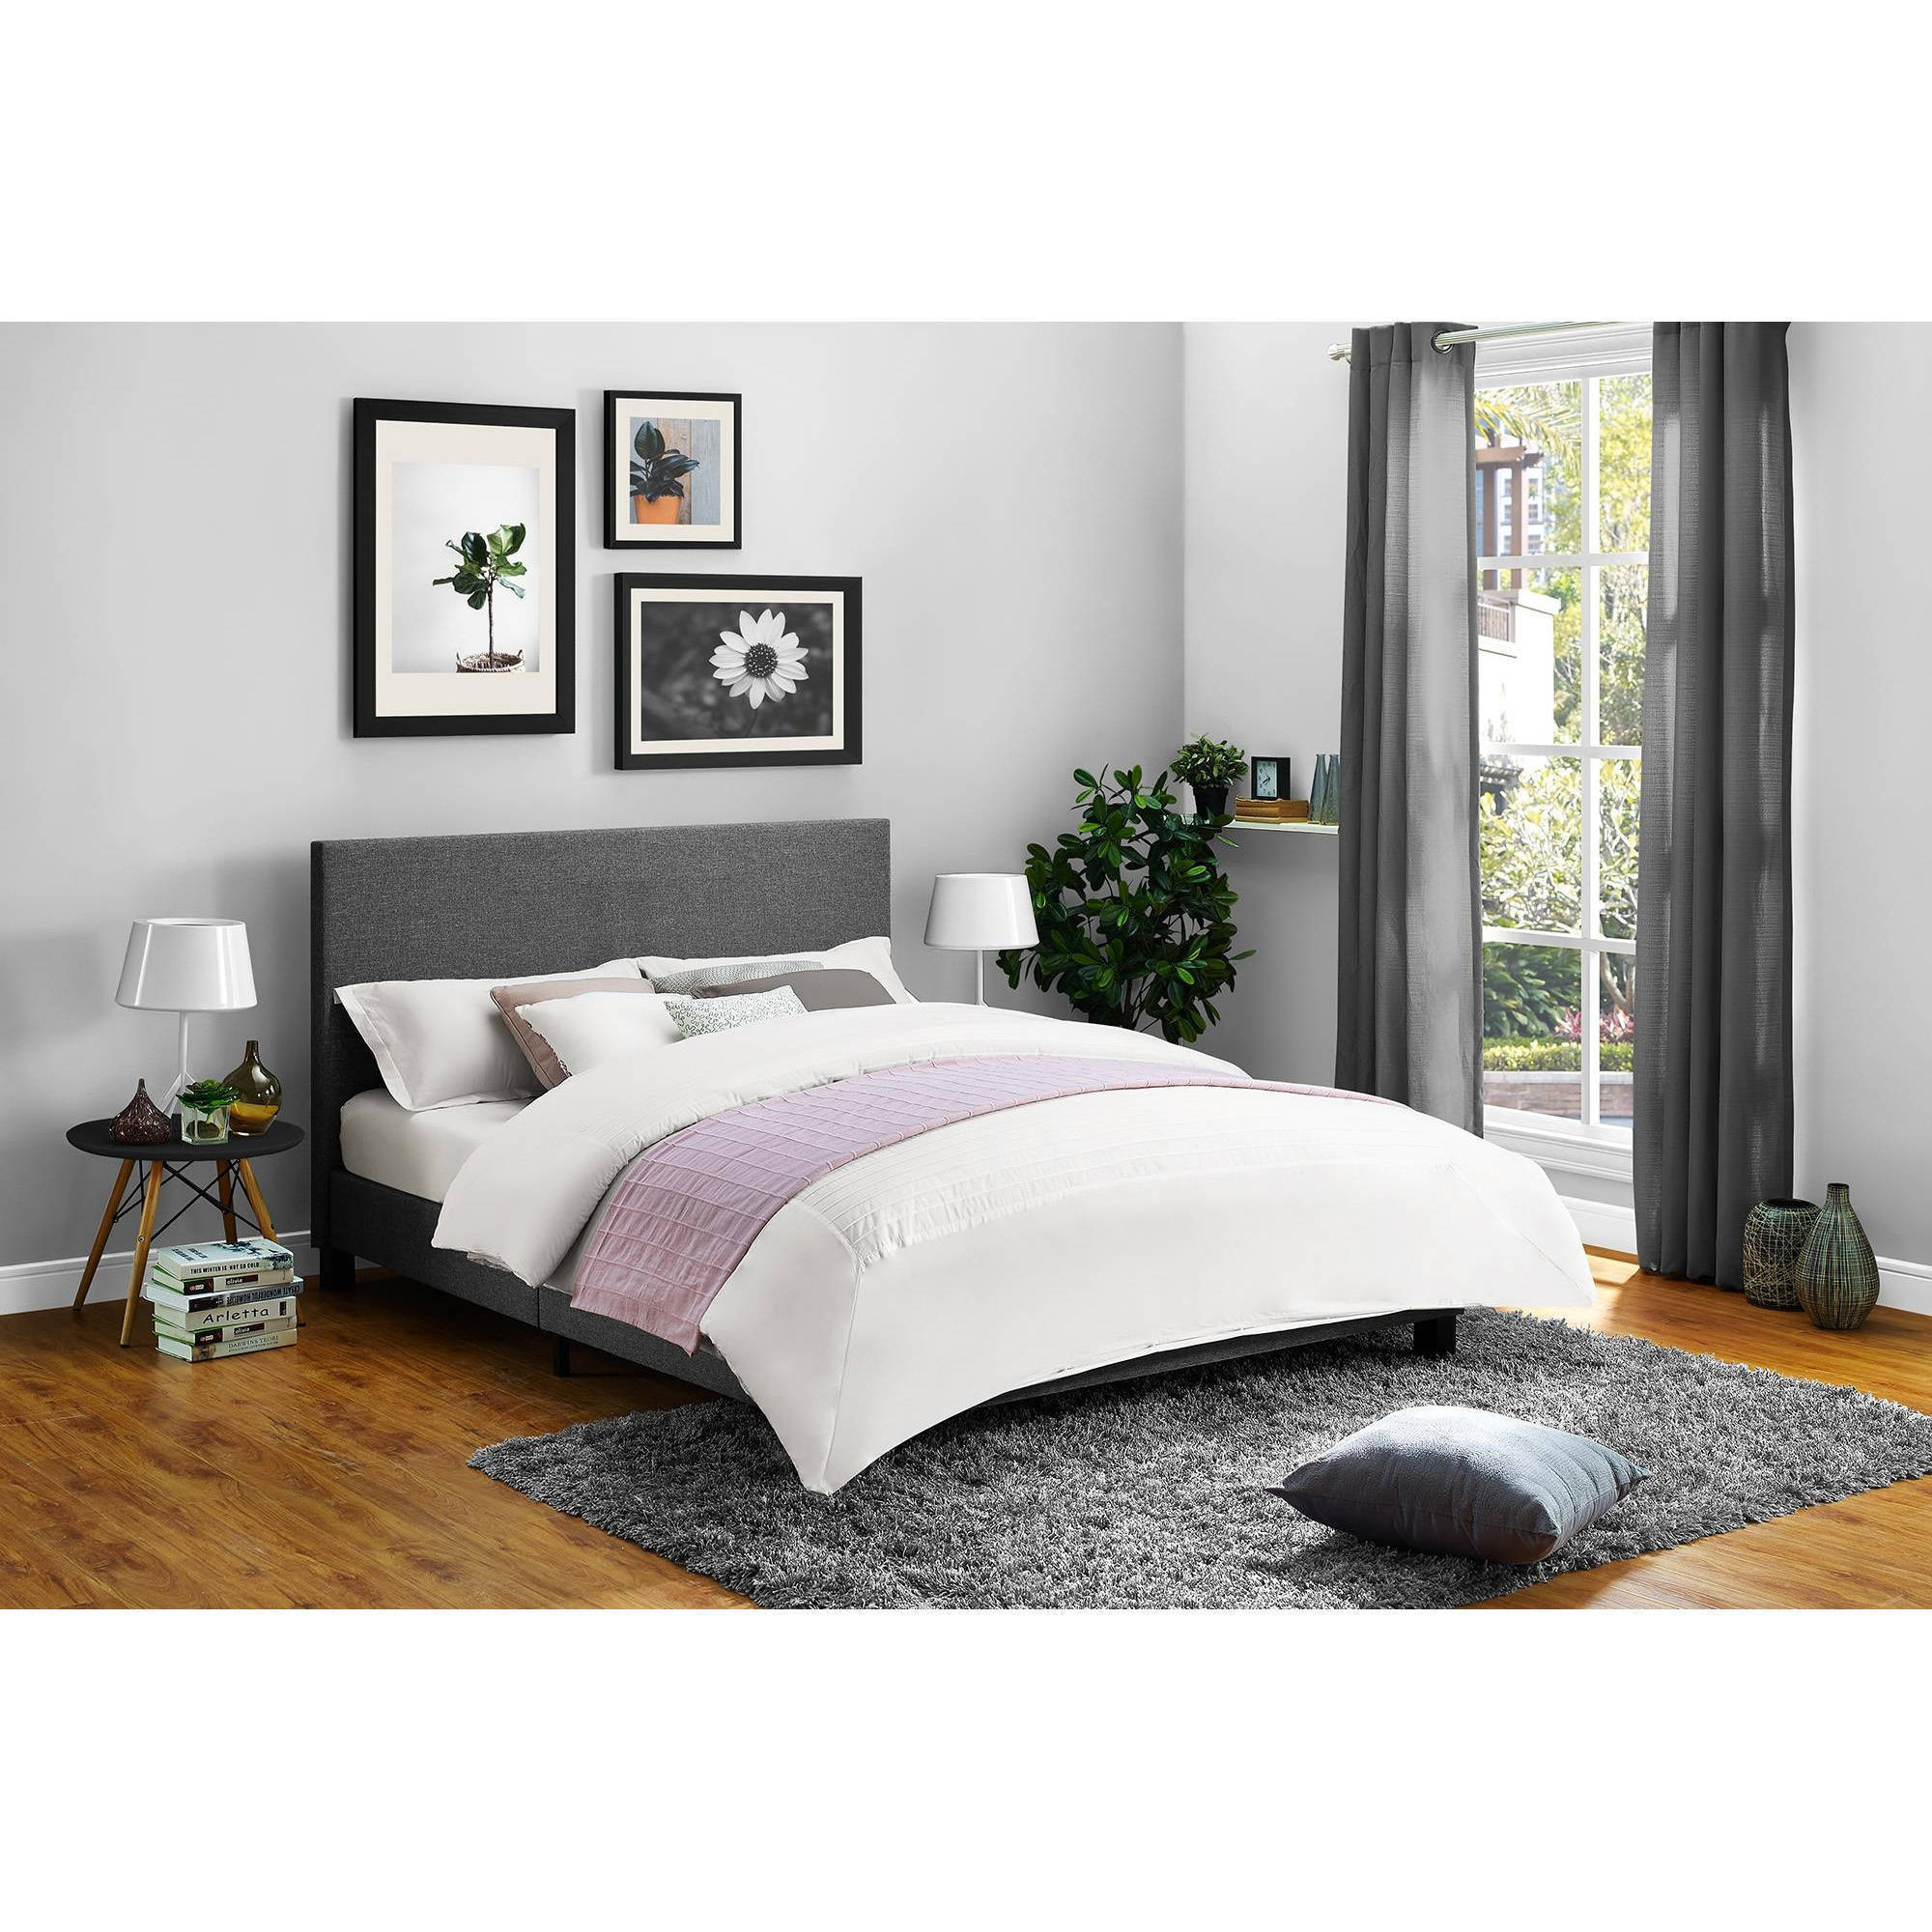 Mainstays Upholstered Bed, Multiple Colors, Queen